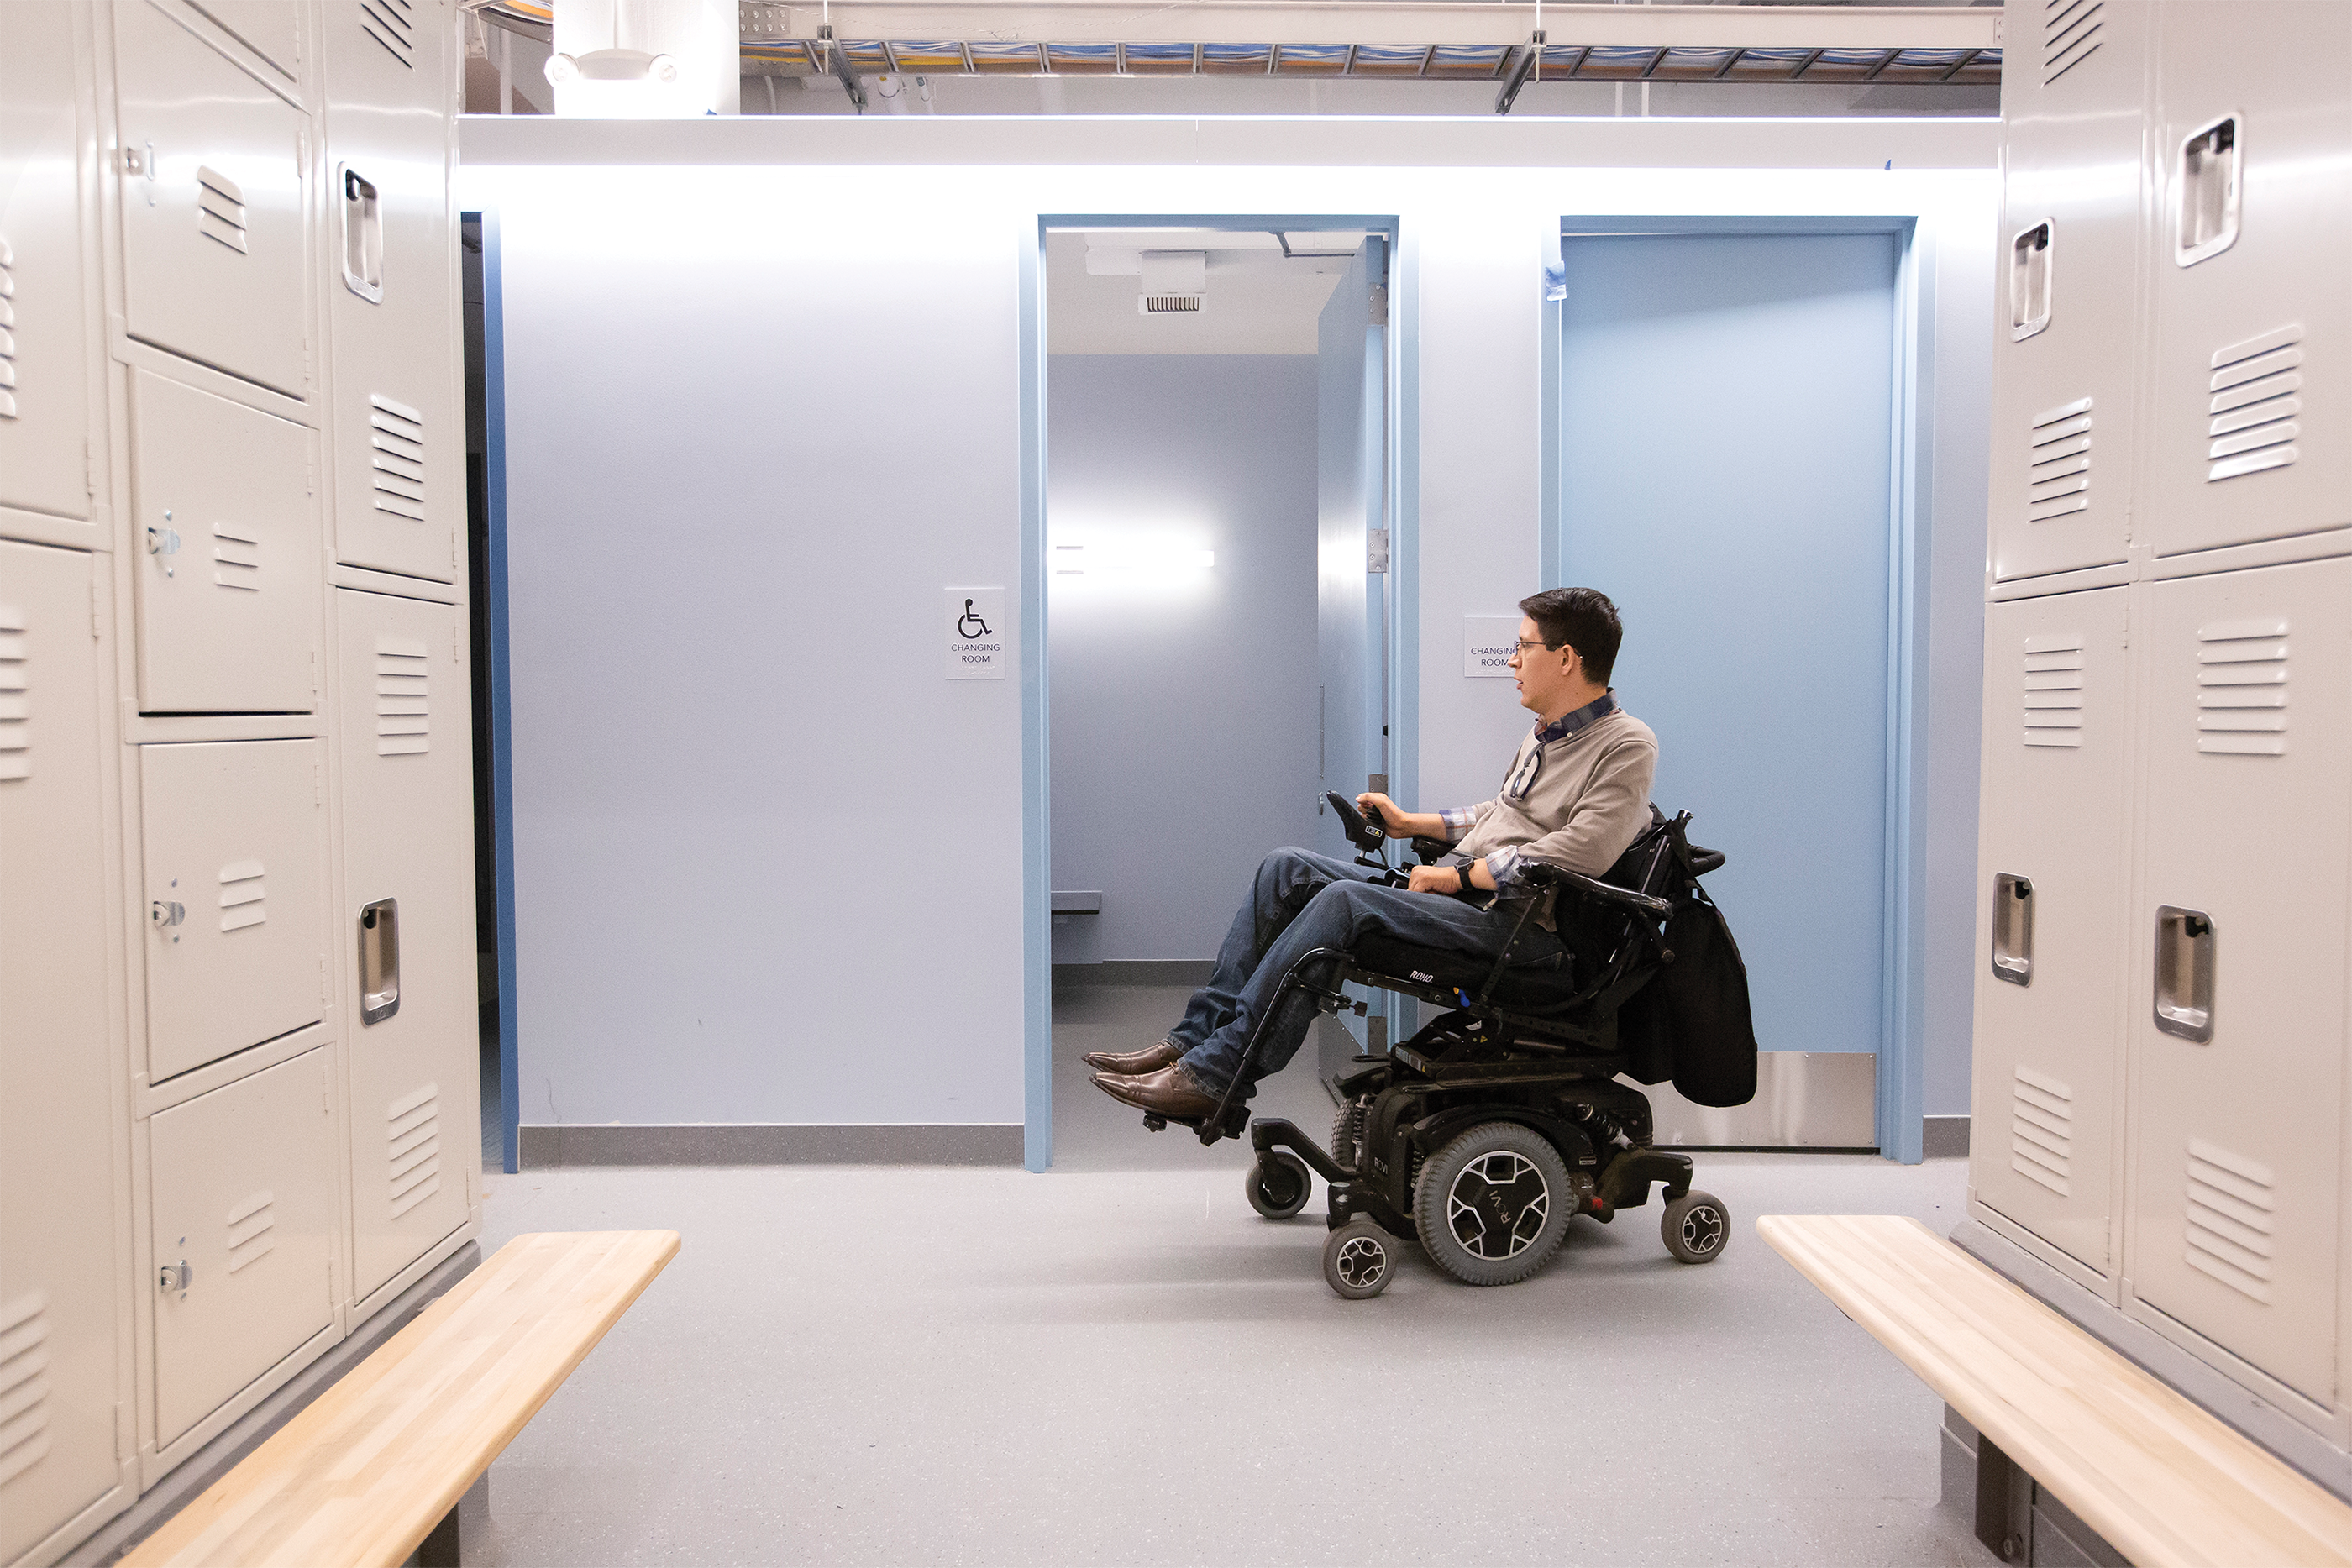 Photo of Ben Perez '13, who uses a wheelchair, in the new locker room, which is more accessible and more private.